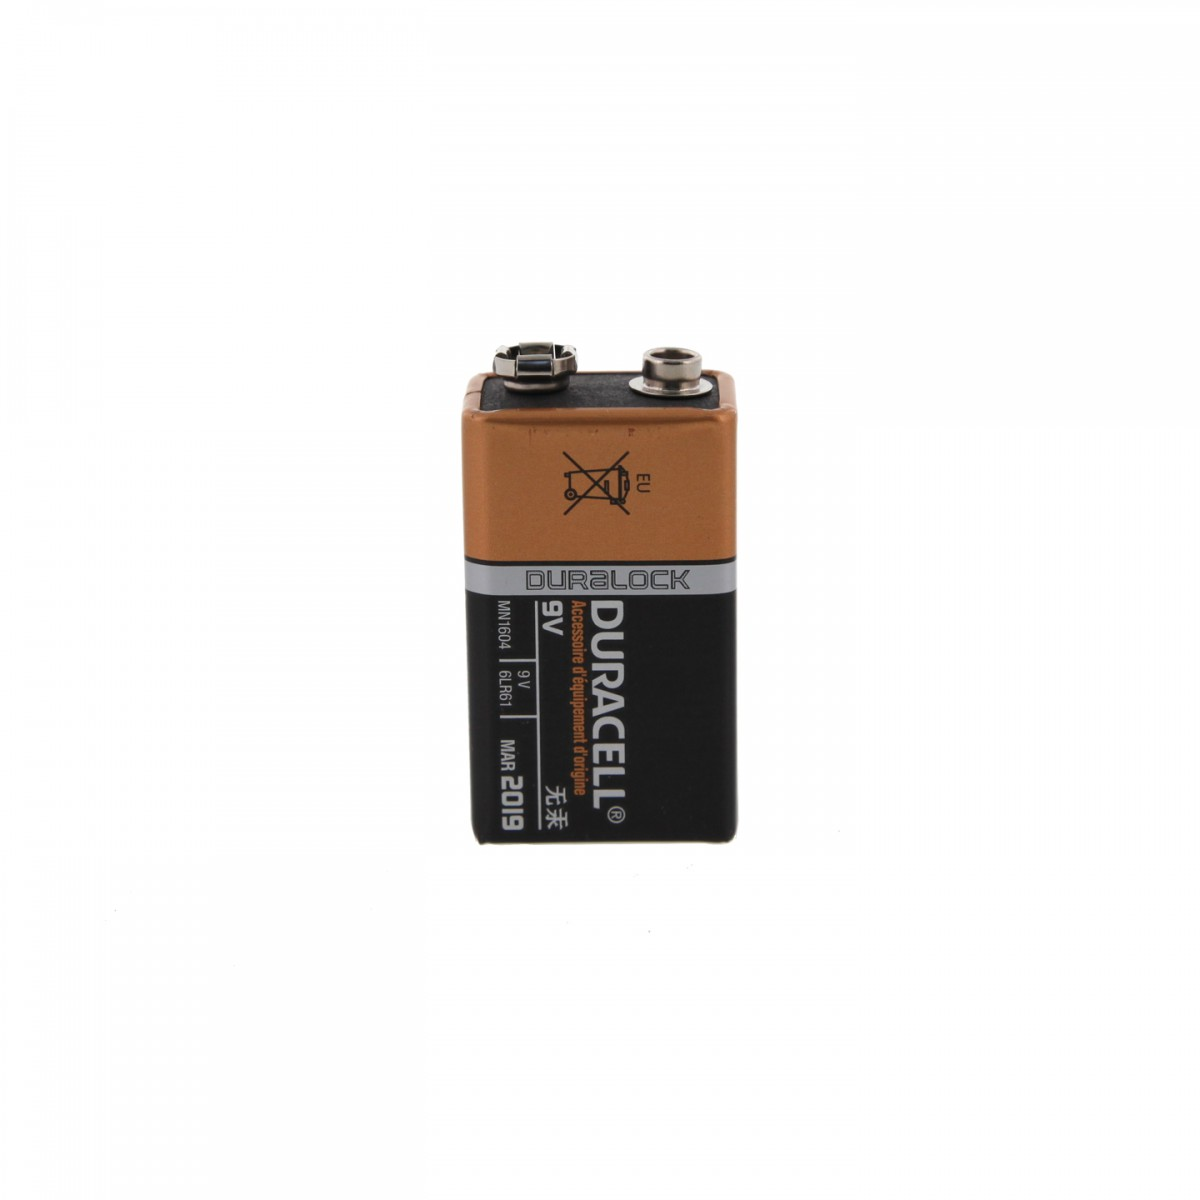 Batterie 9v 9 Volt Duracell Batteries Buy Online For Less